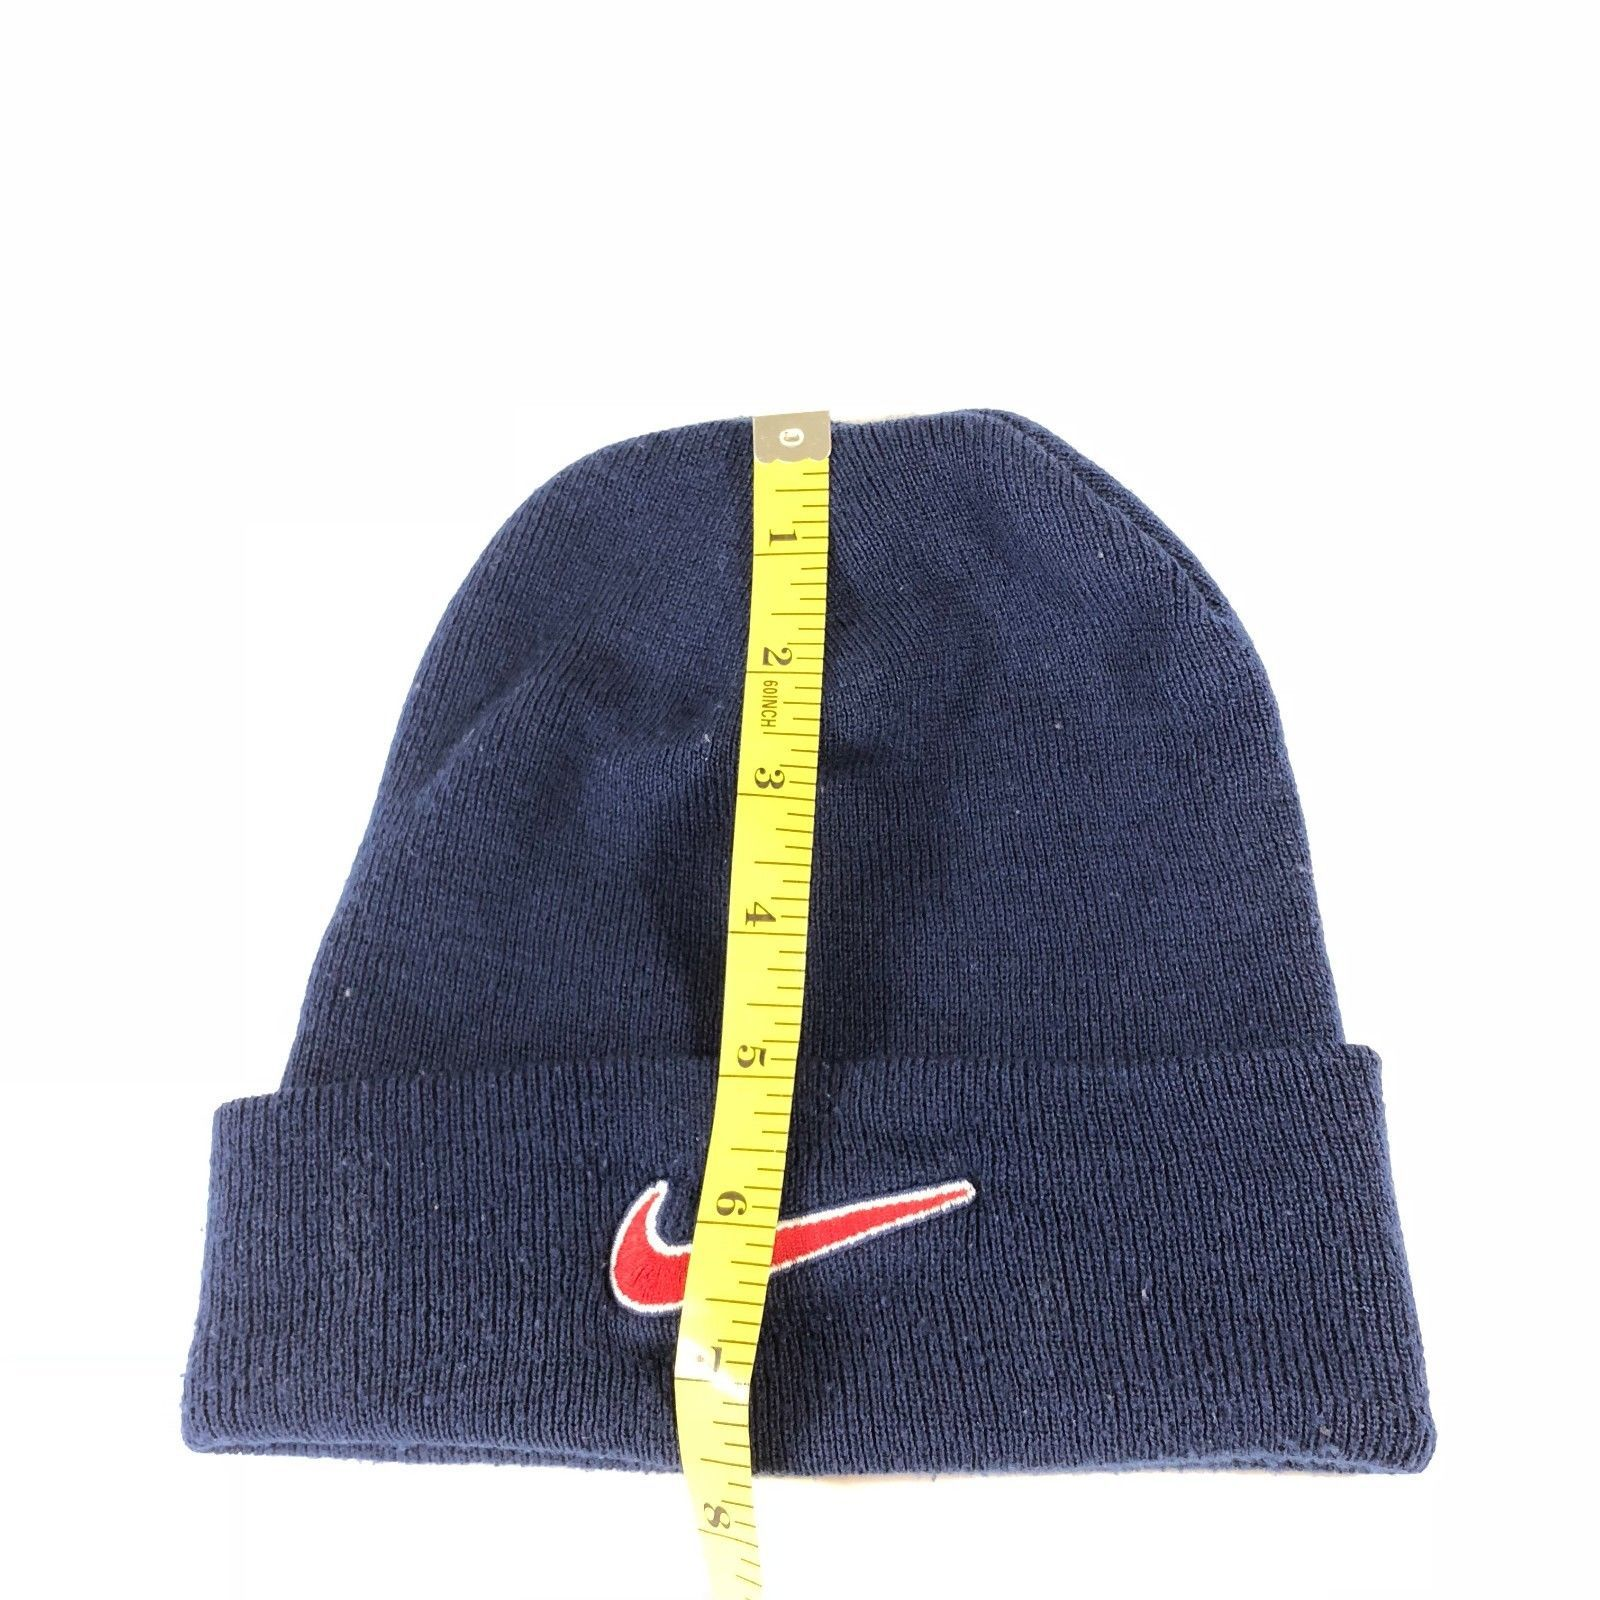 ... Vintage 90s Nike Beanie Hat Knit Cap Navy Blue Men Women One Size Adult  Swoosh ...